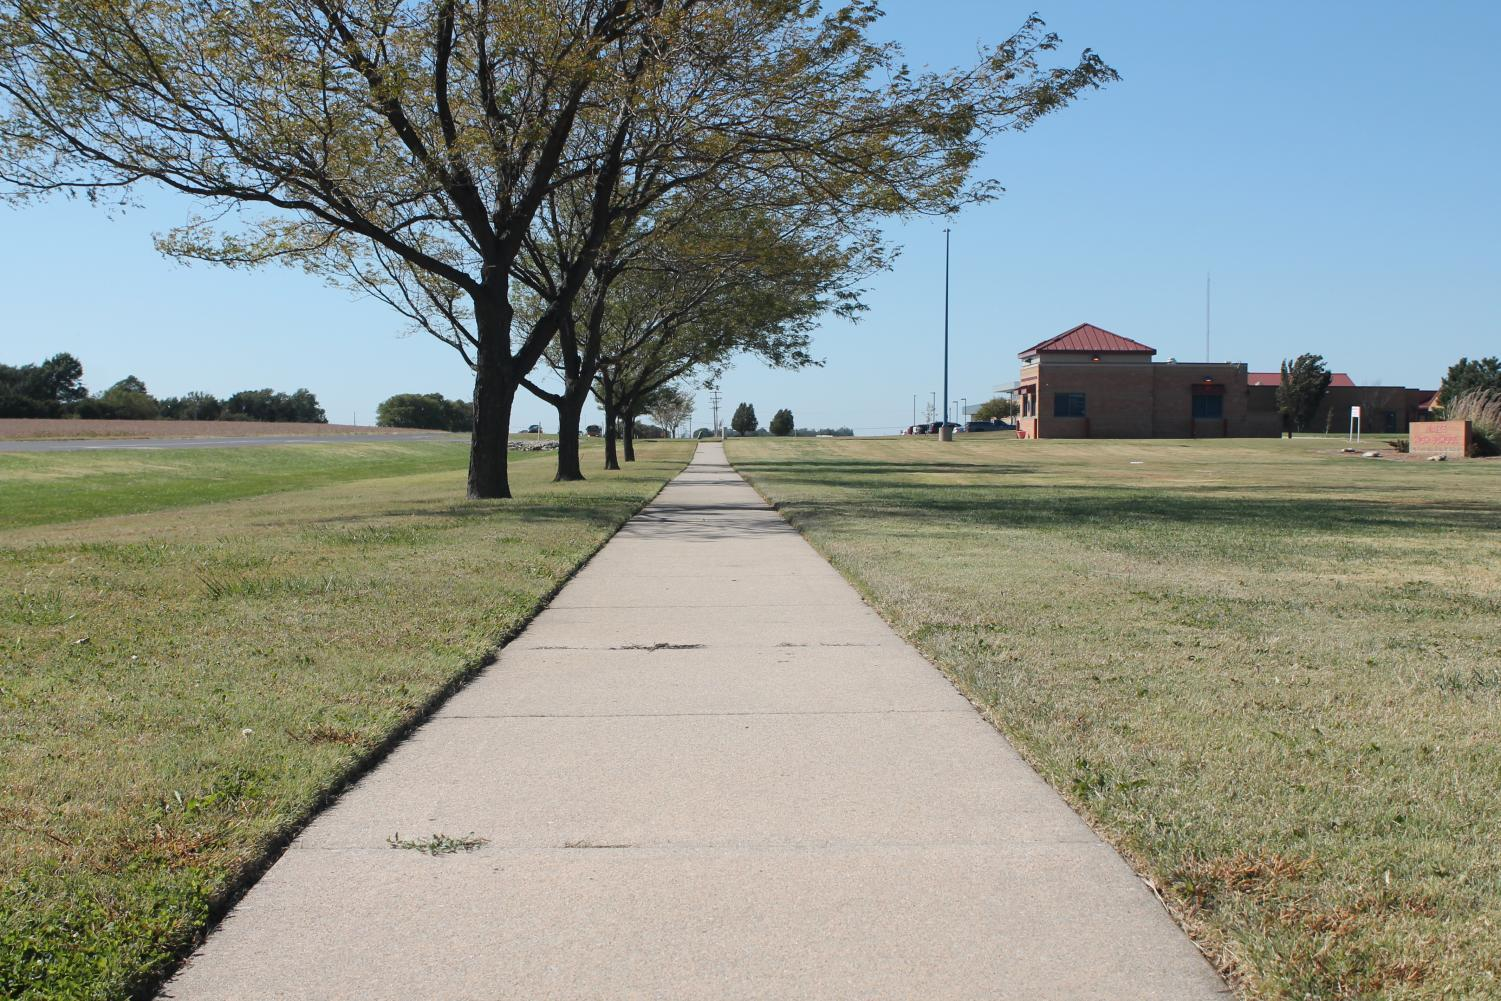 Construction on the new sidewalk started last Monday. The sidewalk will run along 45th street all the way to Maize High.